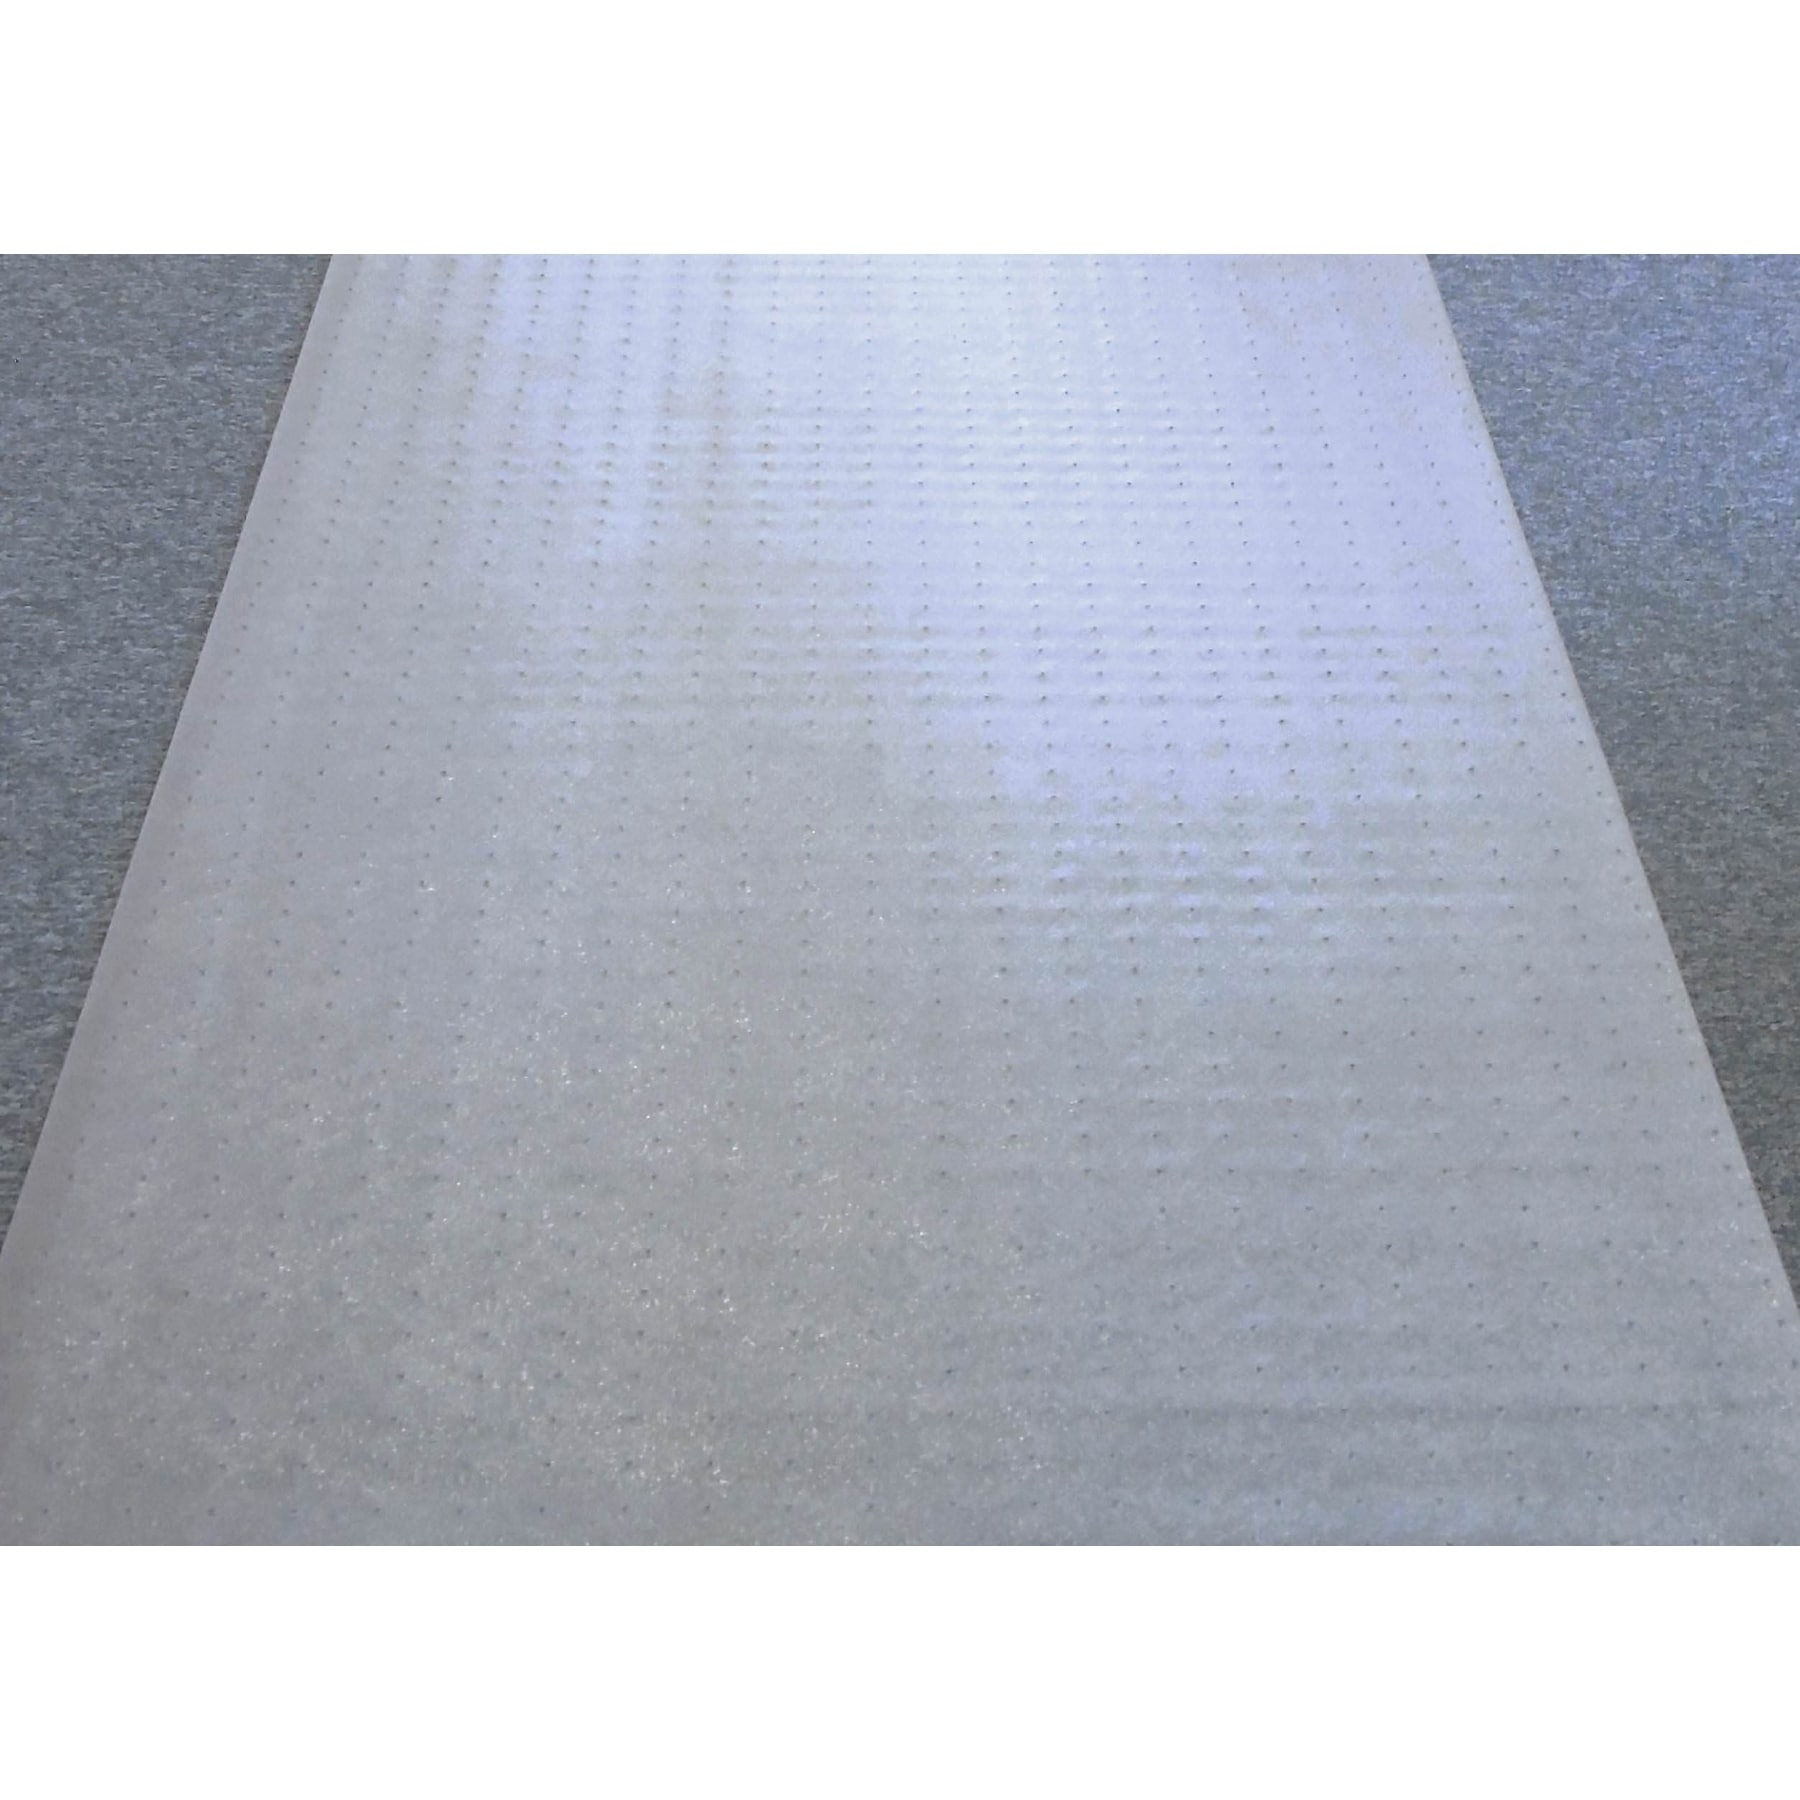 Plastic Carpet Protector Hallway Runner 27 Inches Wide